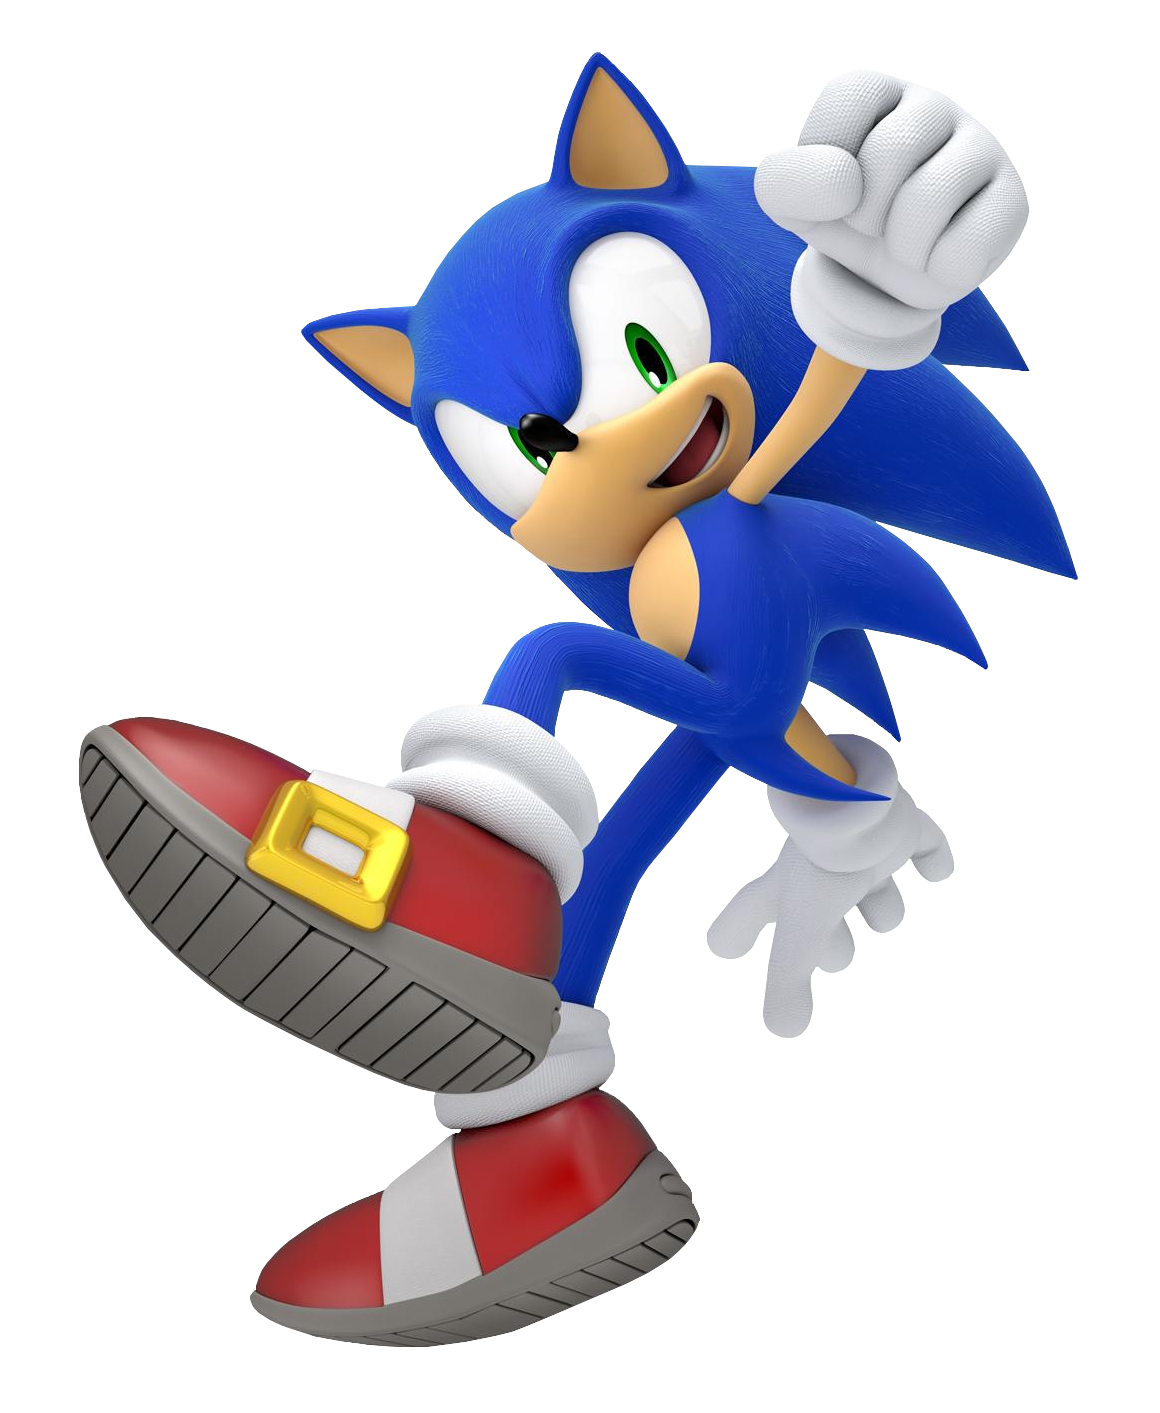 sonic the hedgehog wiki sonic the hedgehog fandom powered by wikia. Black Bedroom Furniture Sets. Home Design Ideas